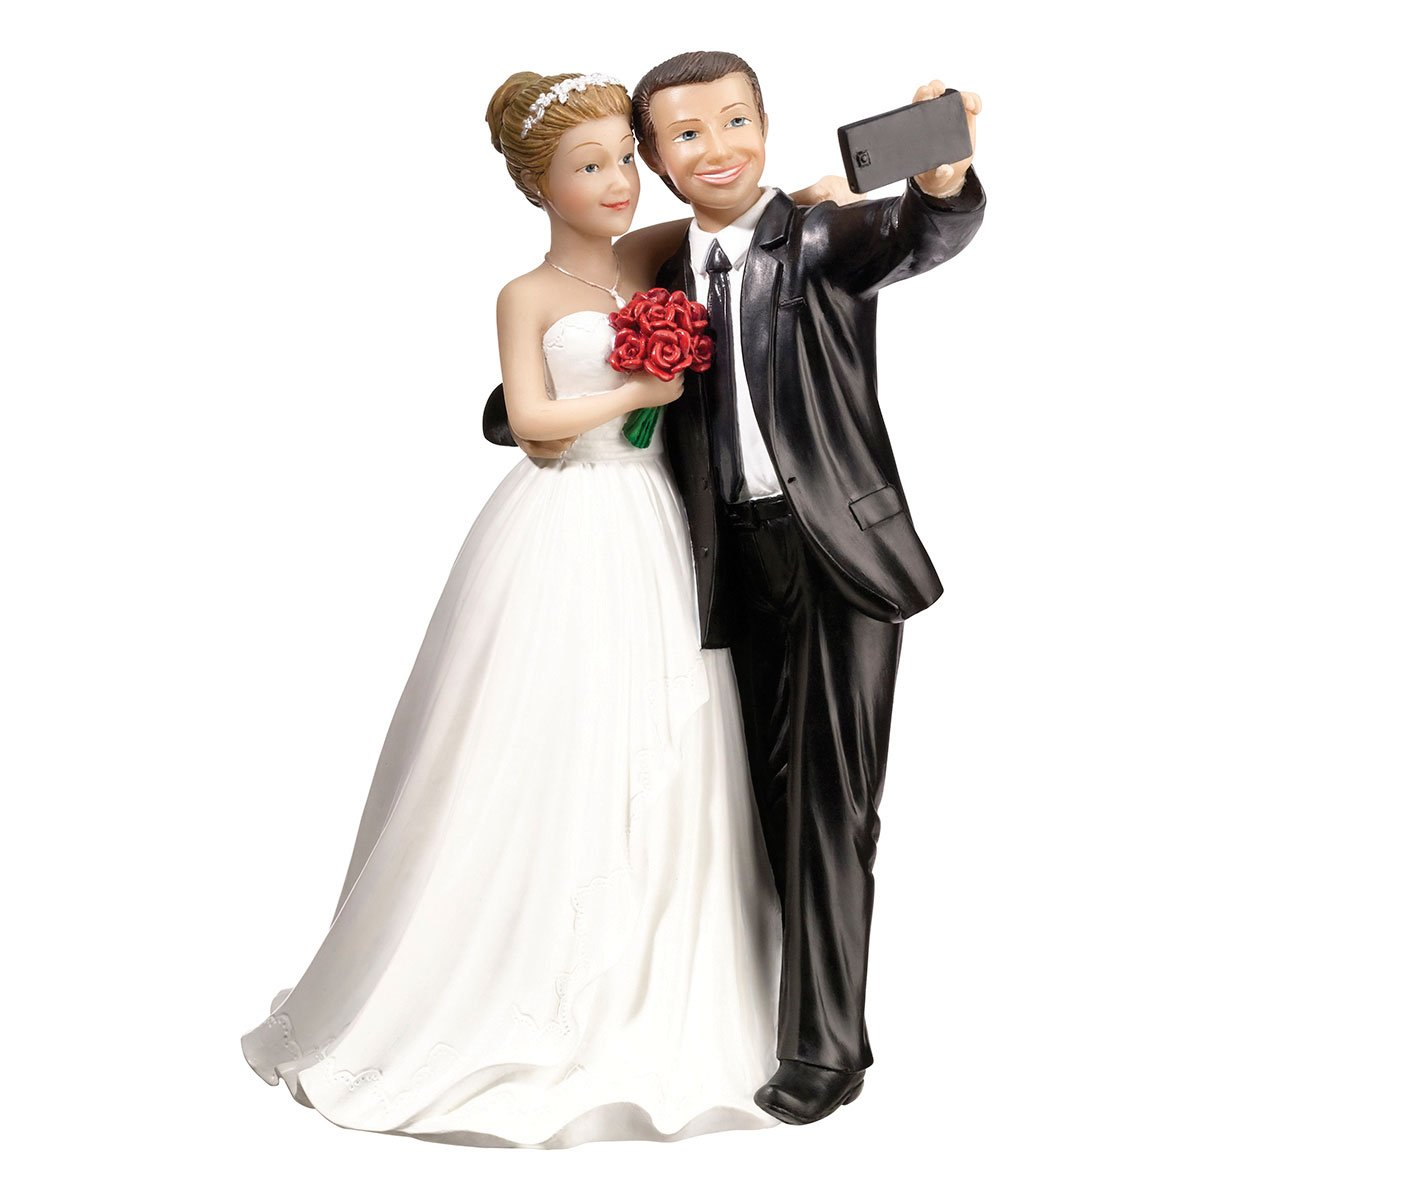 Lillian Rose Funny Selfie Bride & Groom Wedding Cake Topper